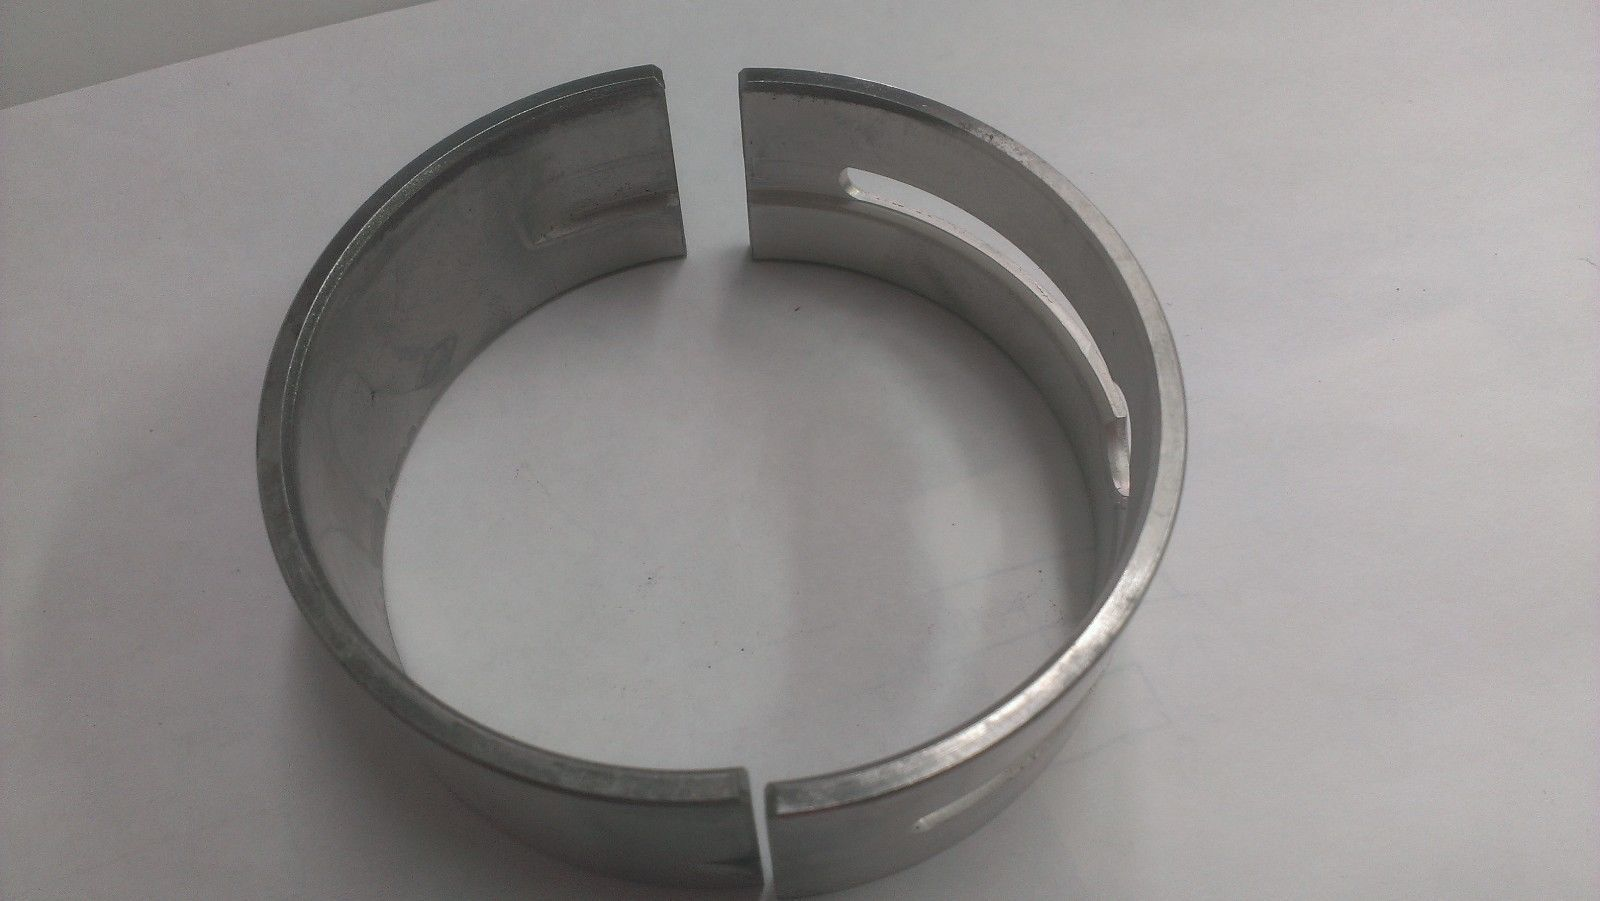 Primary image for 43-003, M & D, Main Bearing, DDAM514952, I53 STD